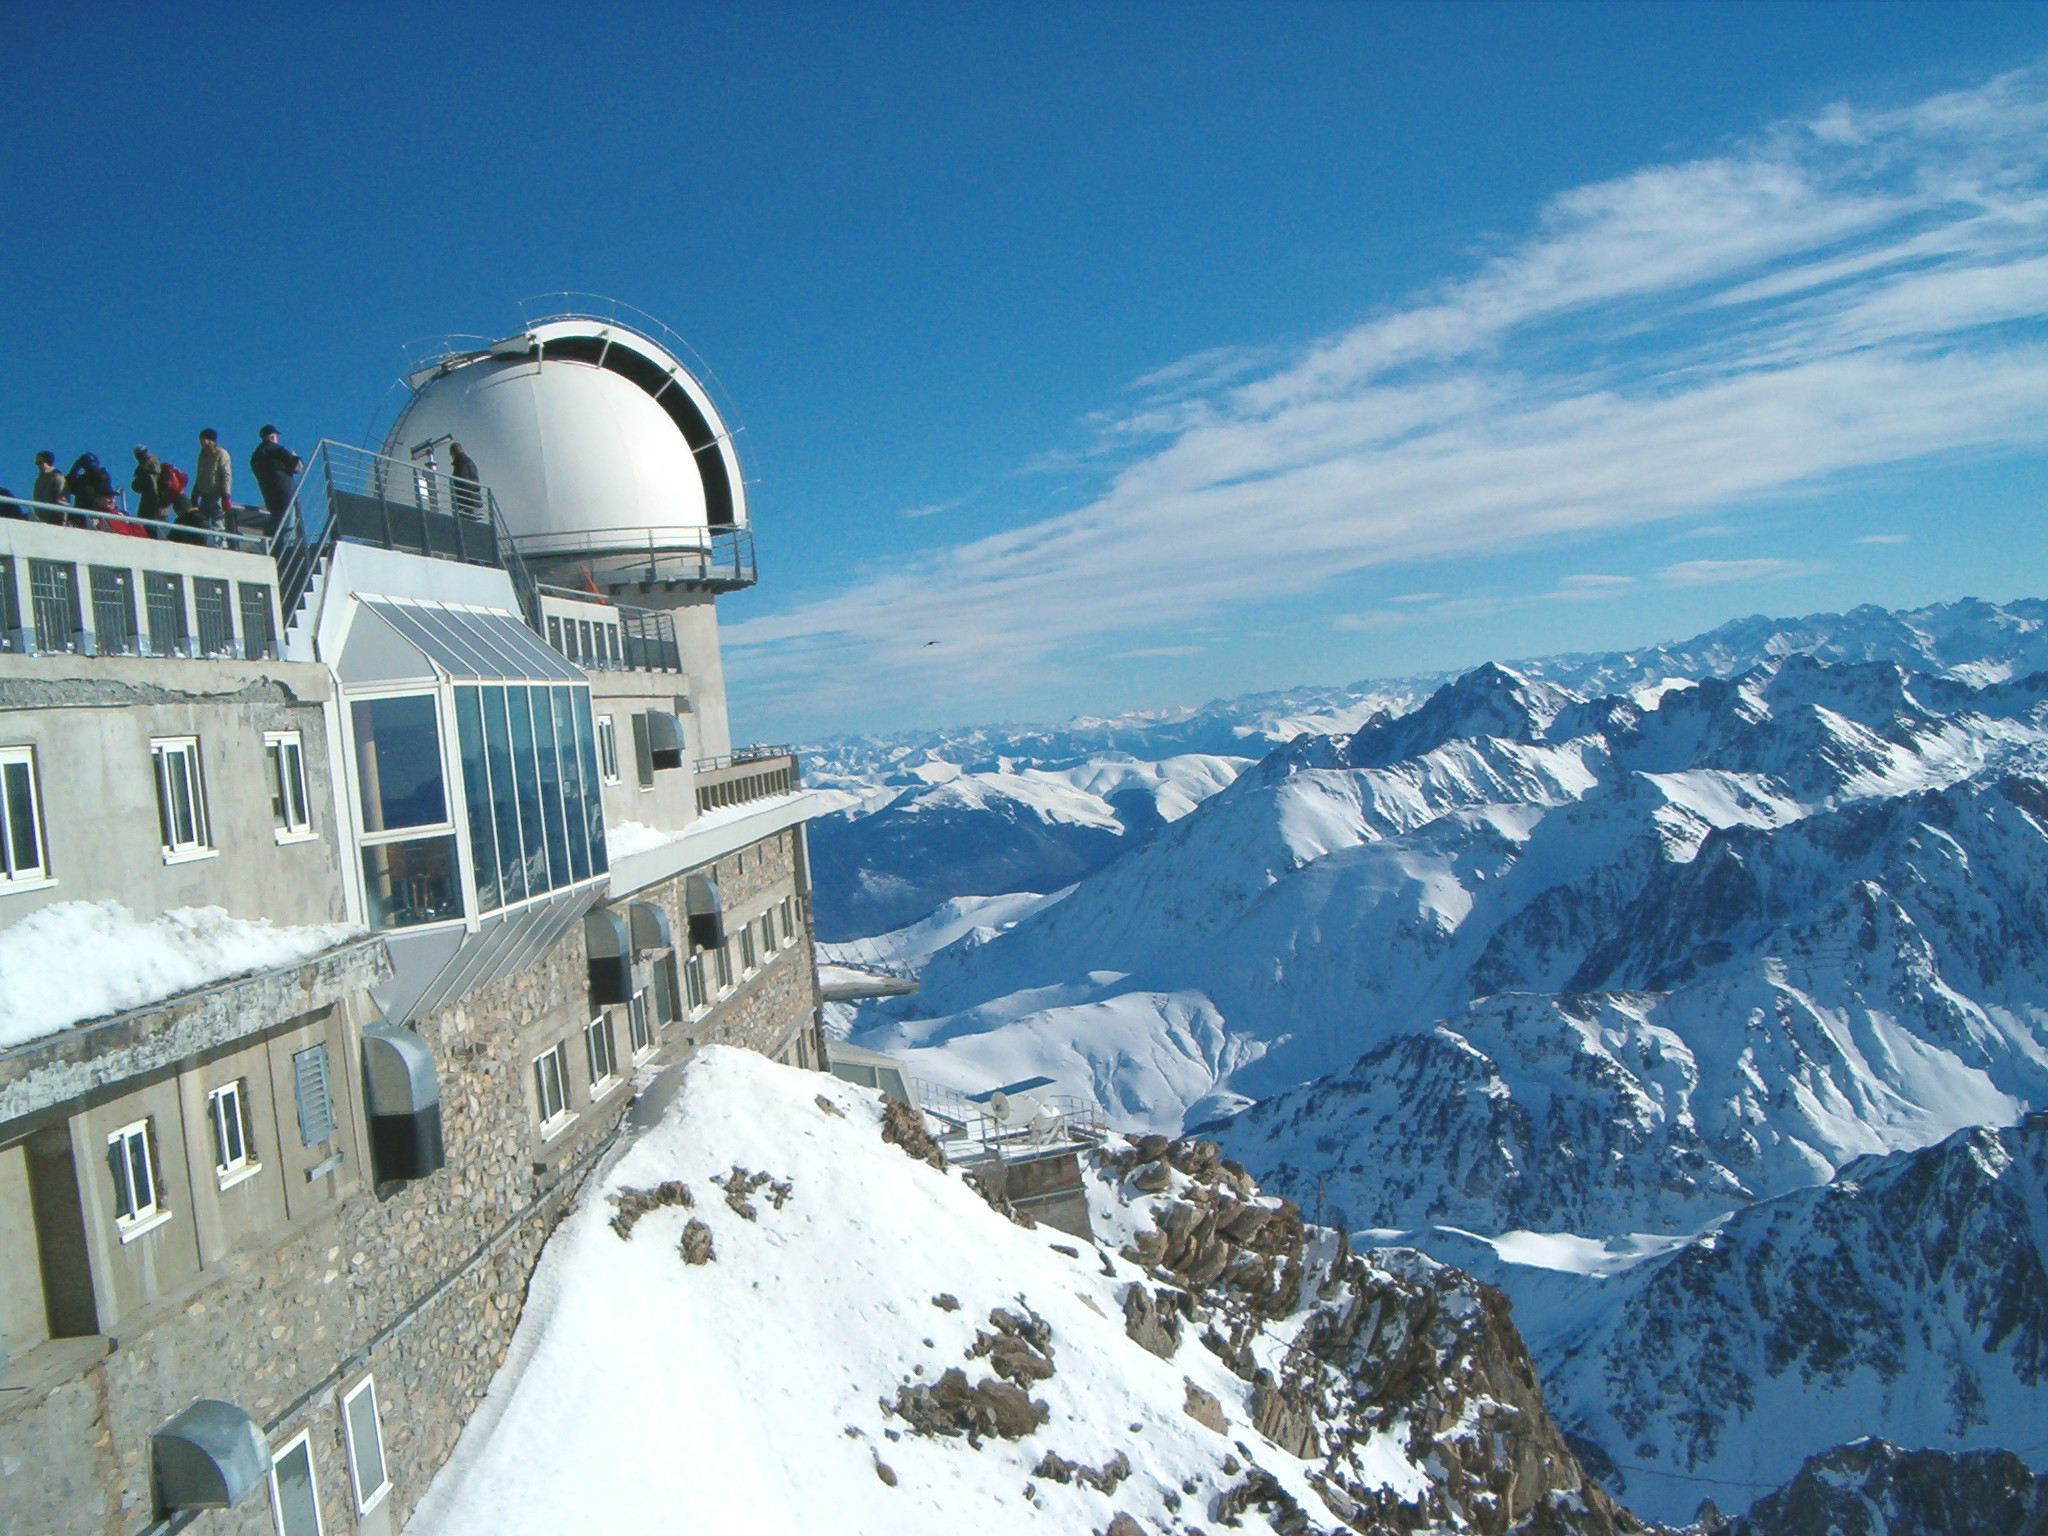 Best ski runs: Far-reaching views from the top of the Pic du Midi